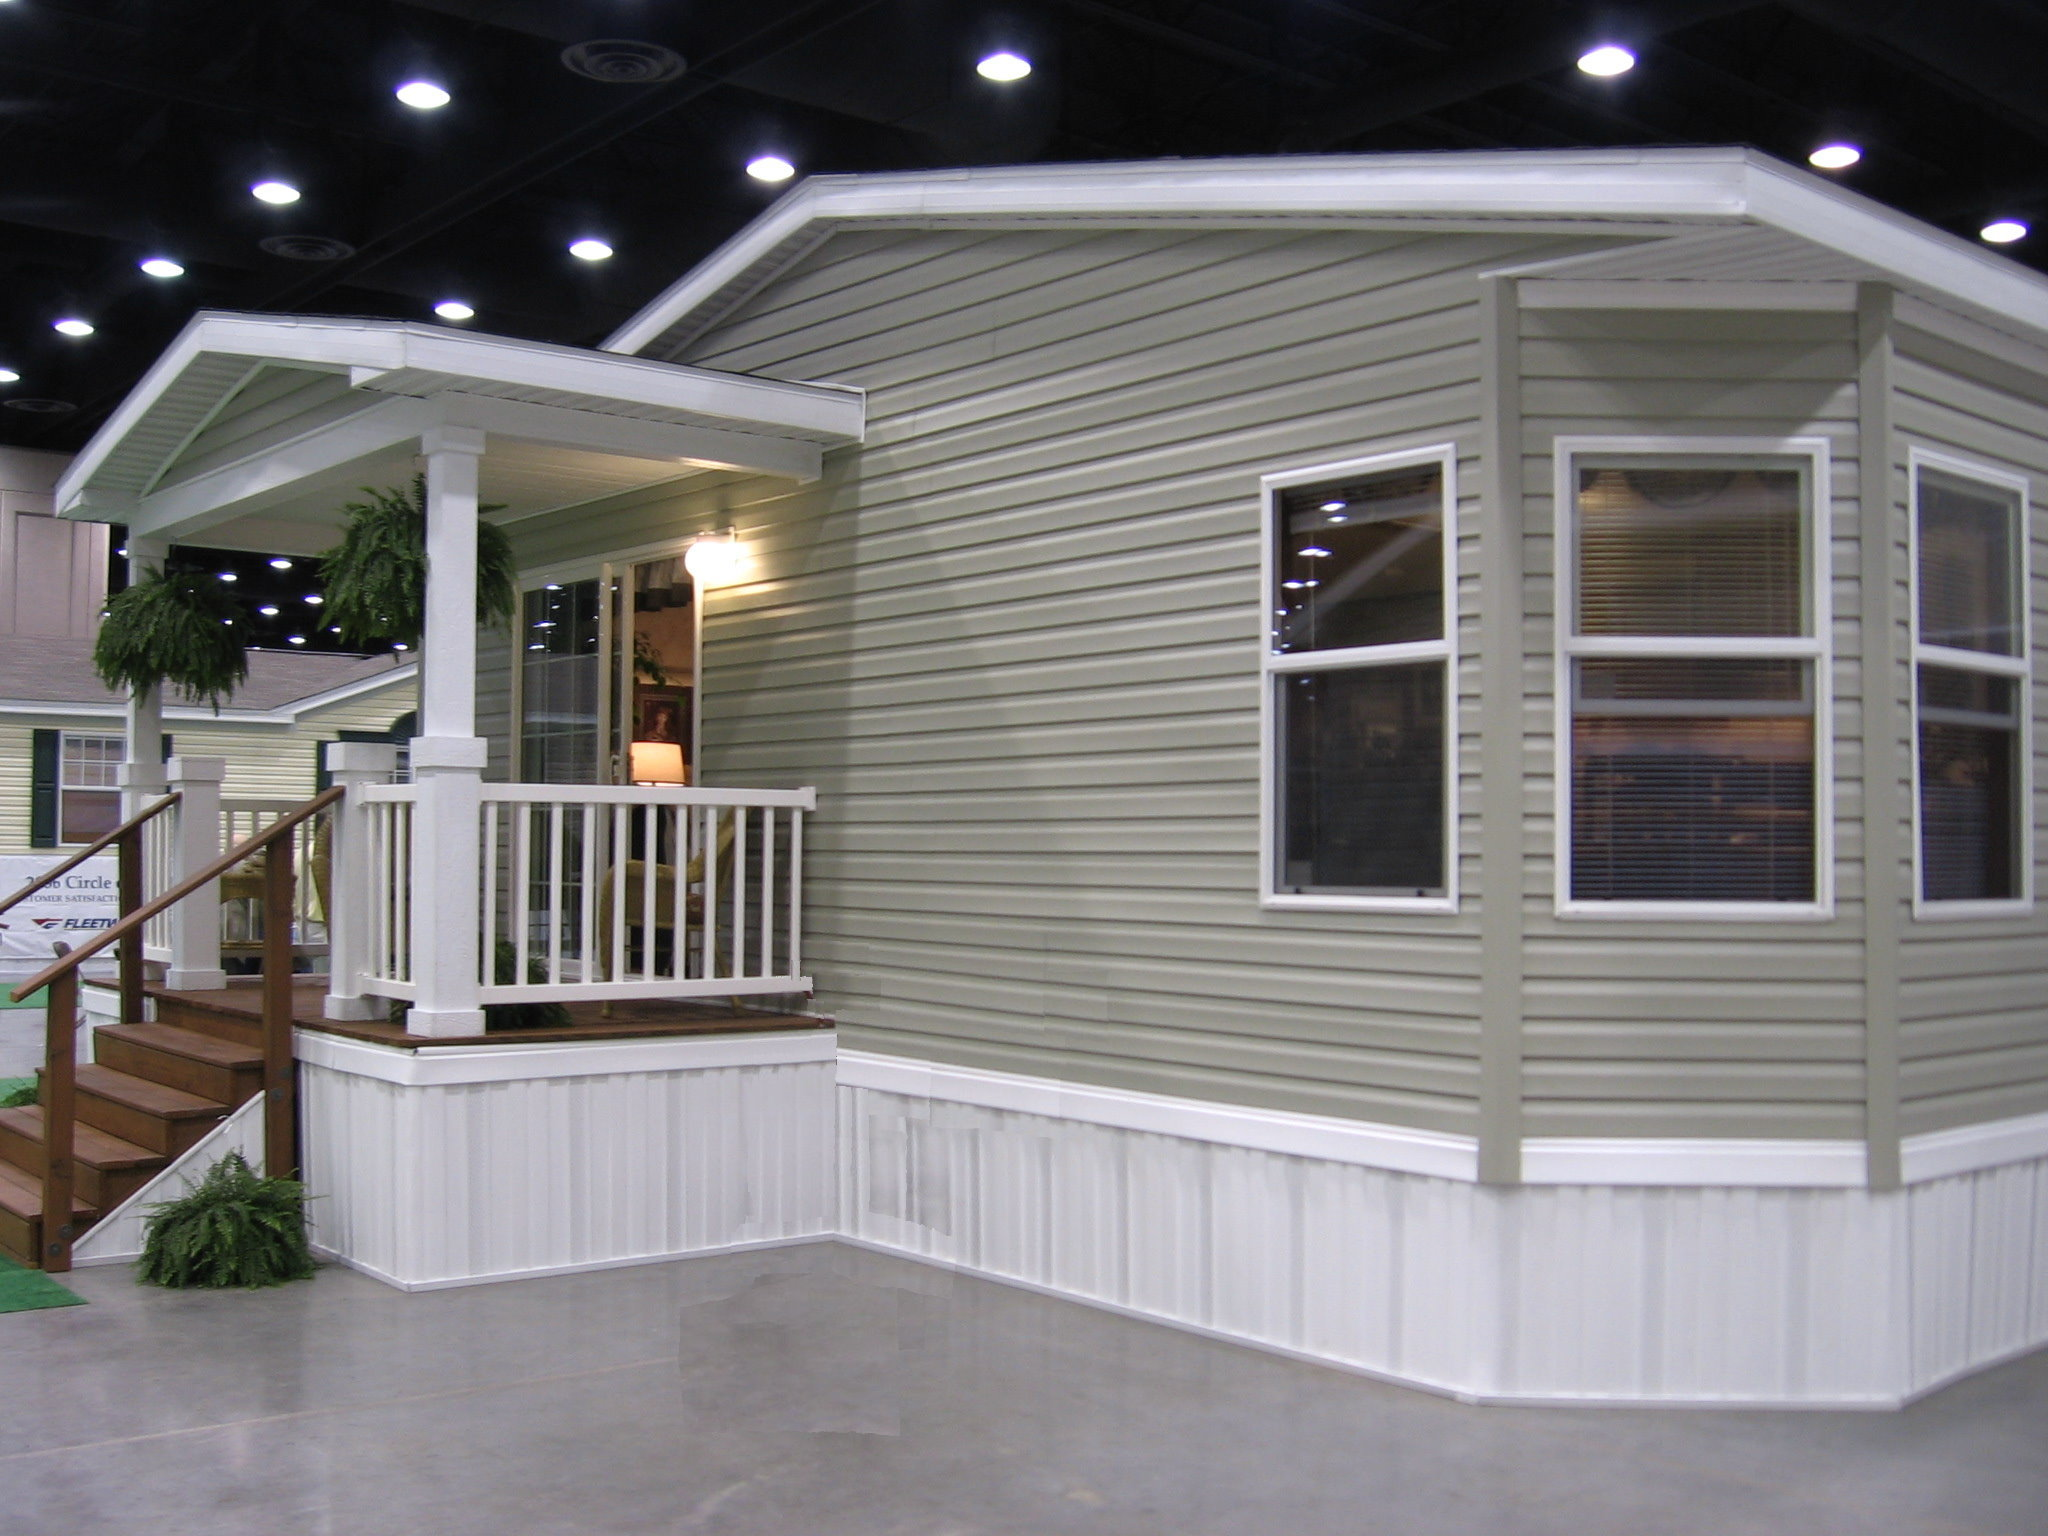 Inspiring Home Design Ideas with Mobile Home Porches: Mobile Home Porches | Mobile Home Patio Enclosures | Mobile Home Decks And Porches